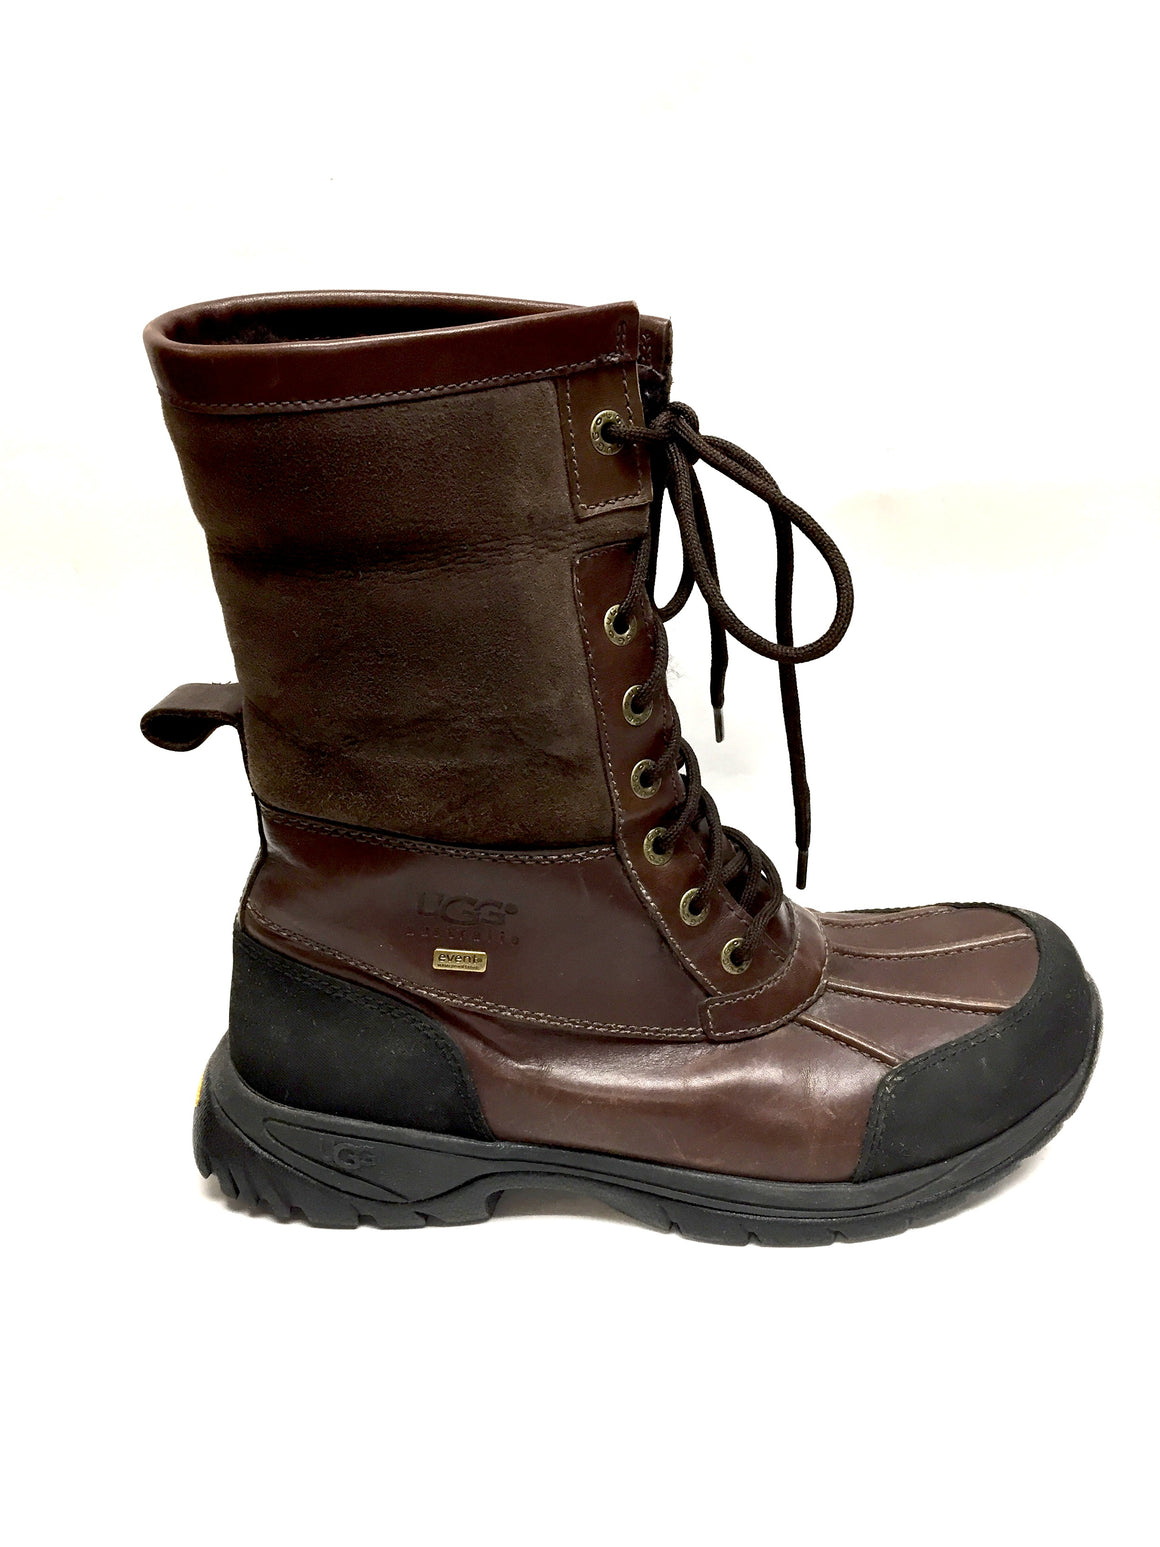 bisbiz.com UGG AUSTRALIA Brown Leather Lace-Up Winter Boots with Sheepskin Fur Cuffs & Rubber Soles Size: US 8  Description: - Bis Luxury Resale